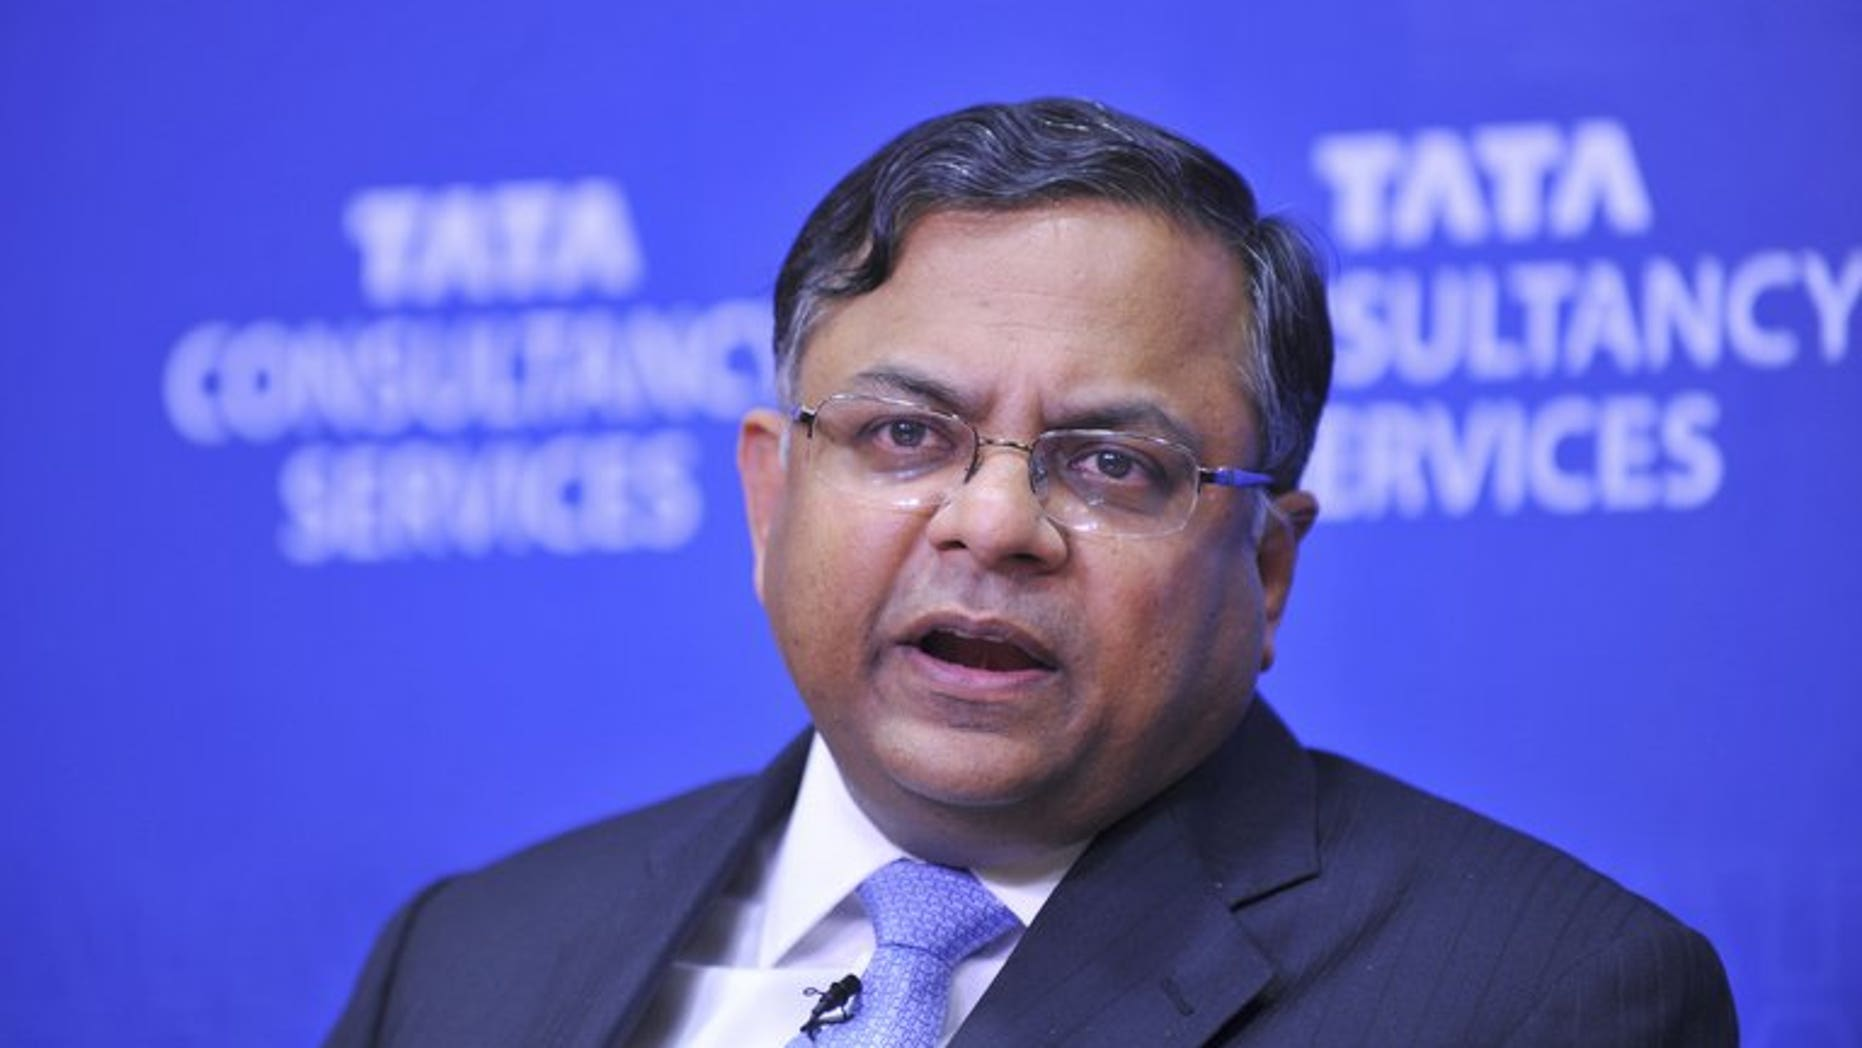 Tata Consultancy Services CEO N. Chandrasekaran at a press conference in Mumbai in 2011. TCS, India's biggest IT outsourcing firm, on Thursday reported a 16.8 percent jump in quarterly net profit, beating market forecasts.